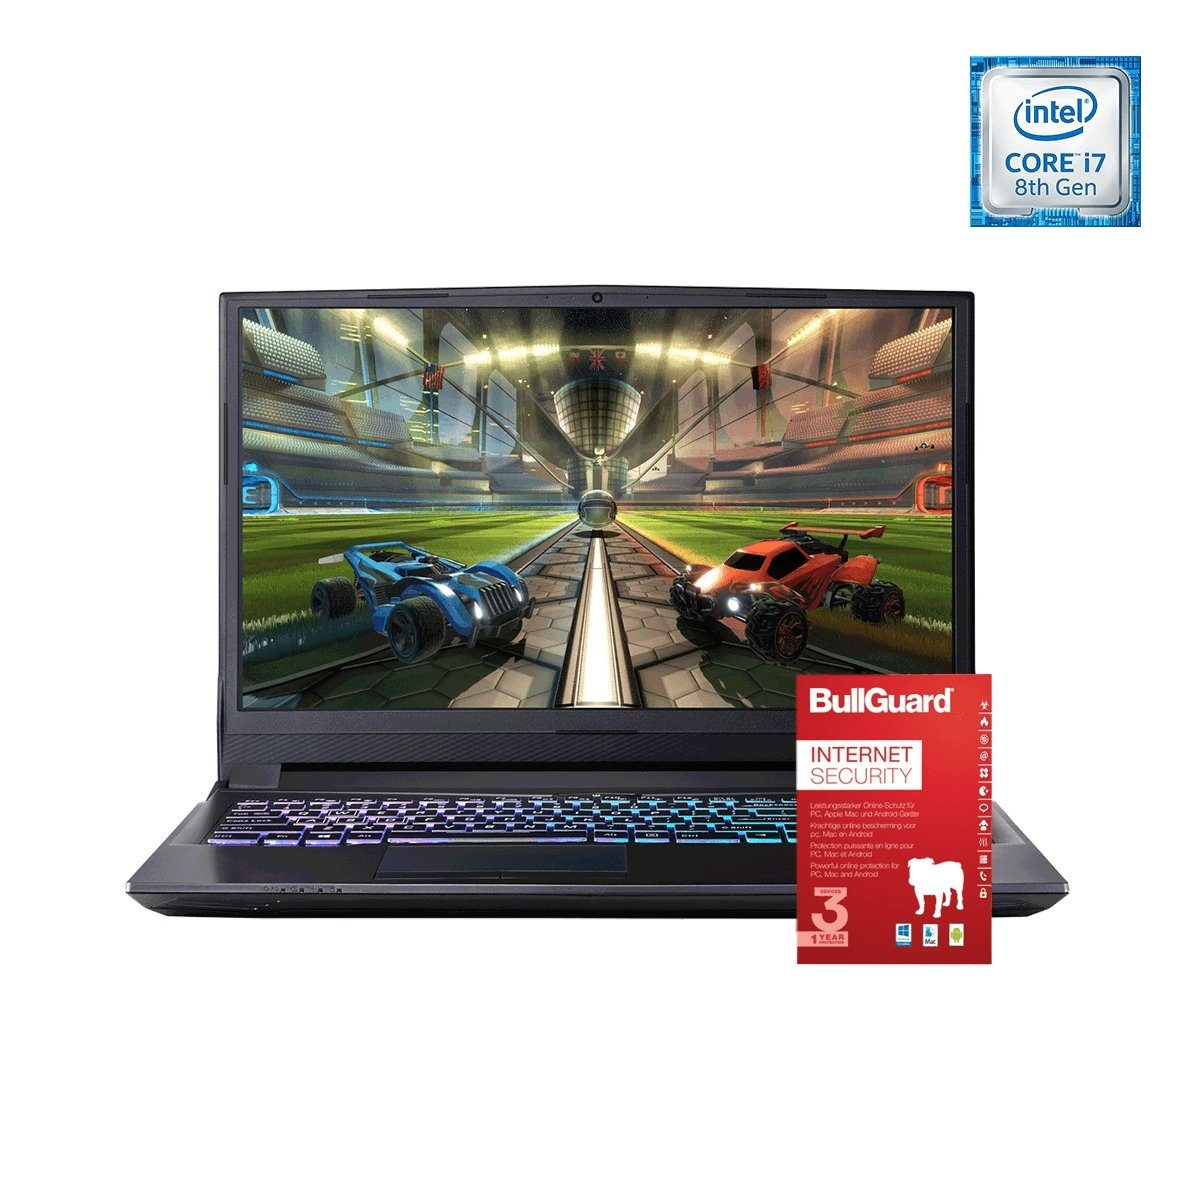 ONE GAMING Notebook, Intel® Core i7-8750H, GeForce GTX 1060, 16GB »NB 44938«